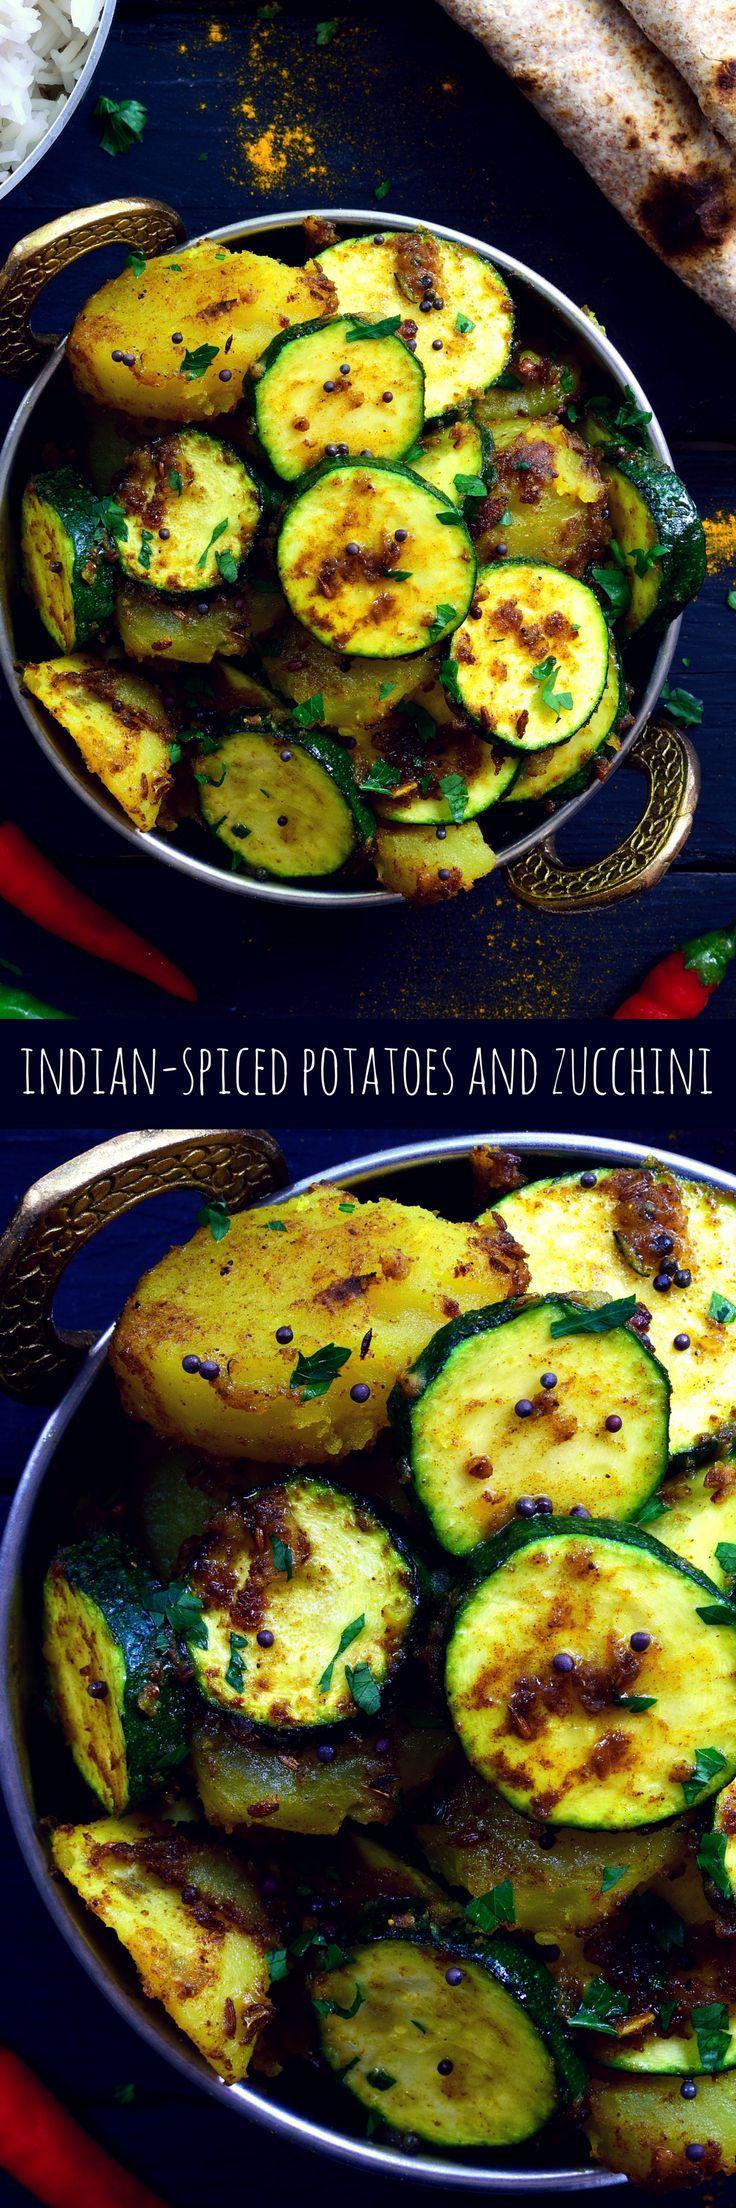 Just two main ingredients but loads of flavour, these Indian-spiced potatoes and zucchini make a great side dish or are delicious served with rice and naan or chapati bread.